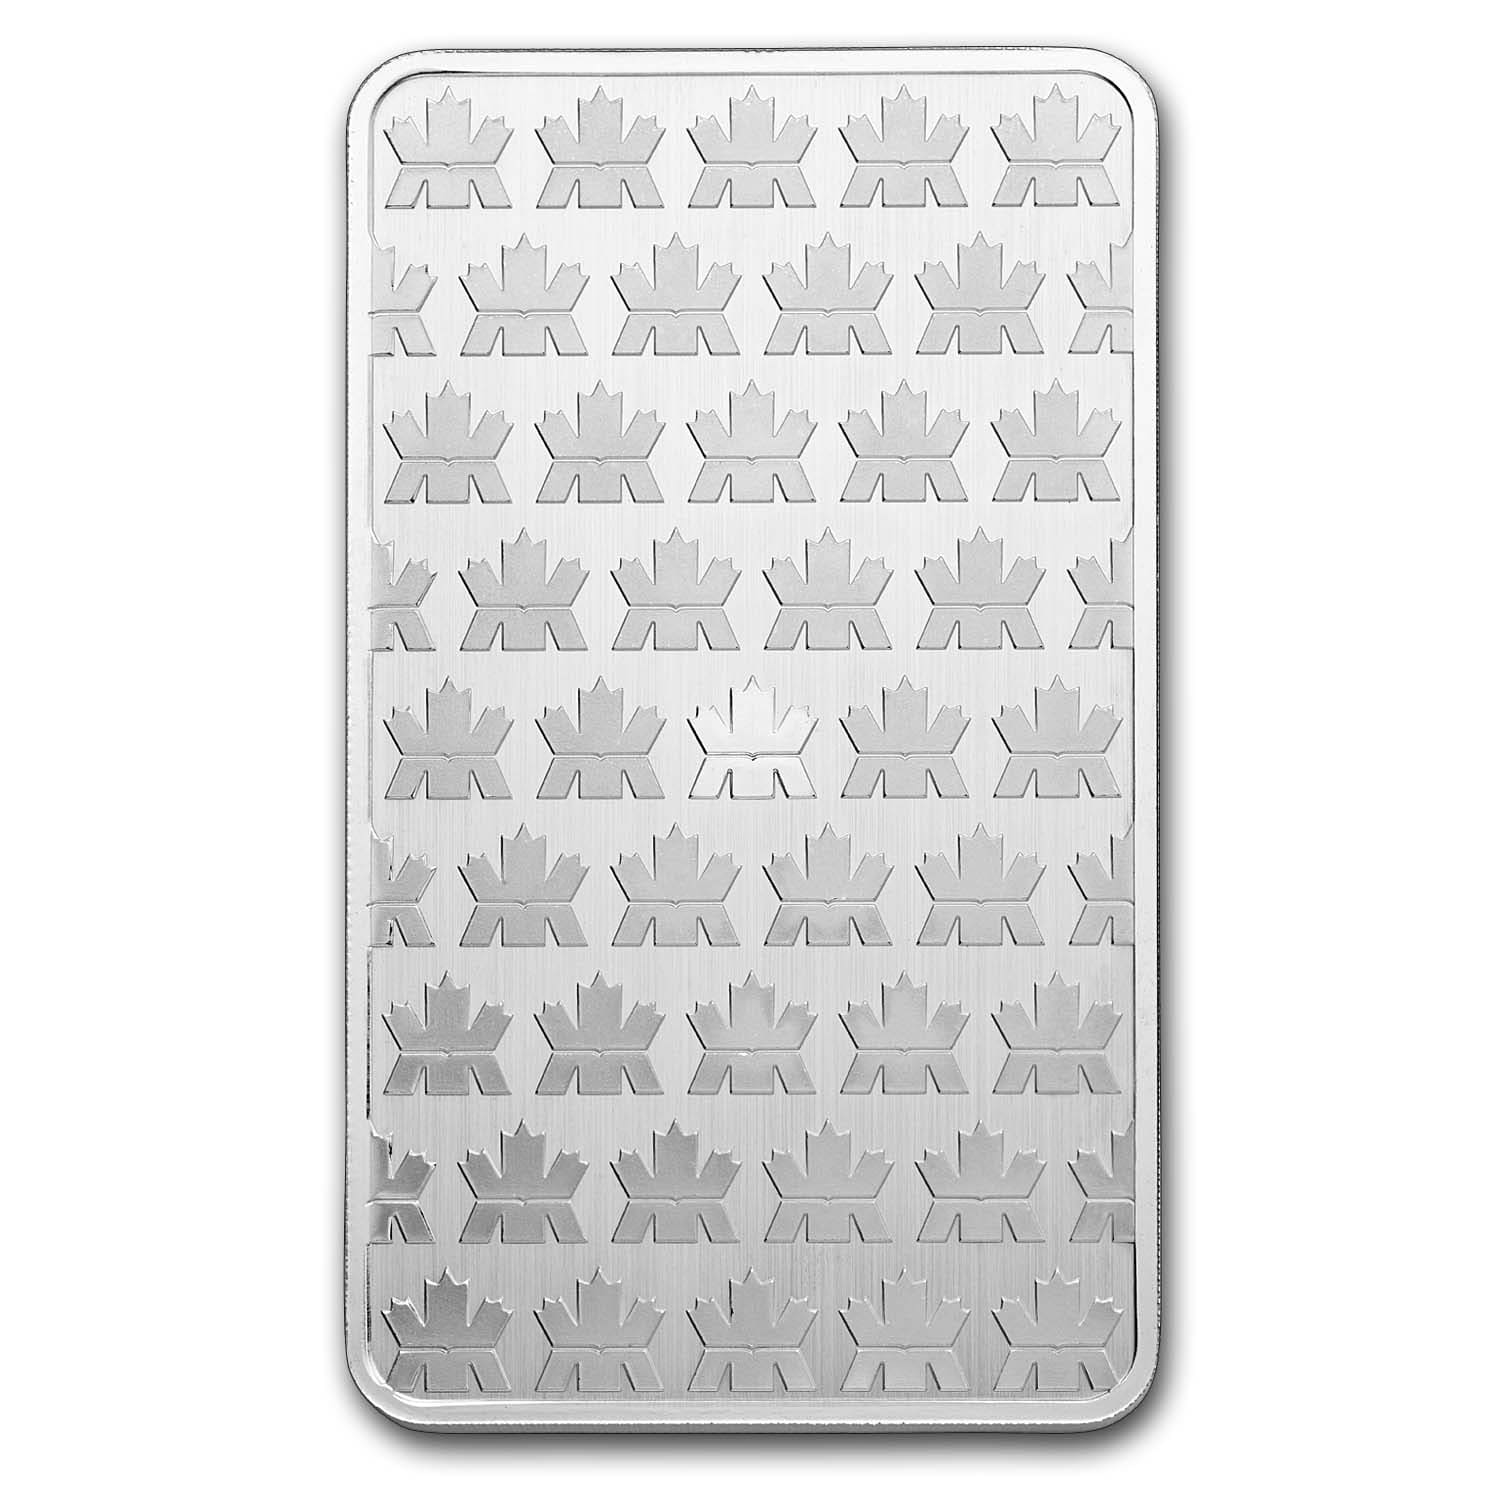 10 Oz Fine Silver Bars Royal Canadian Mint 10 Oz Silver